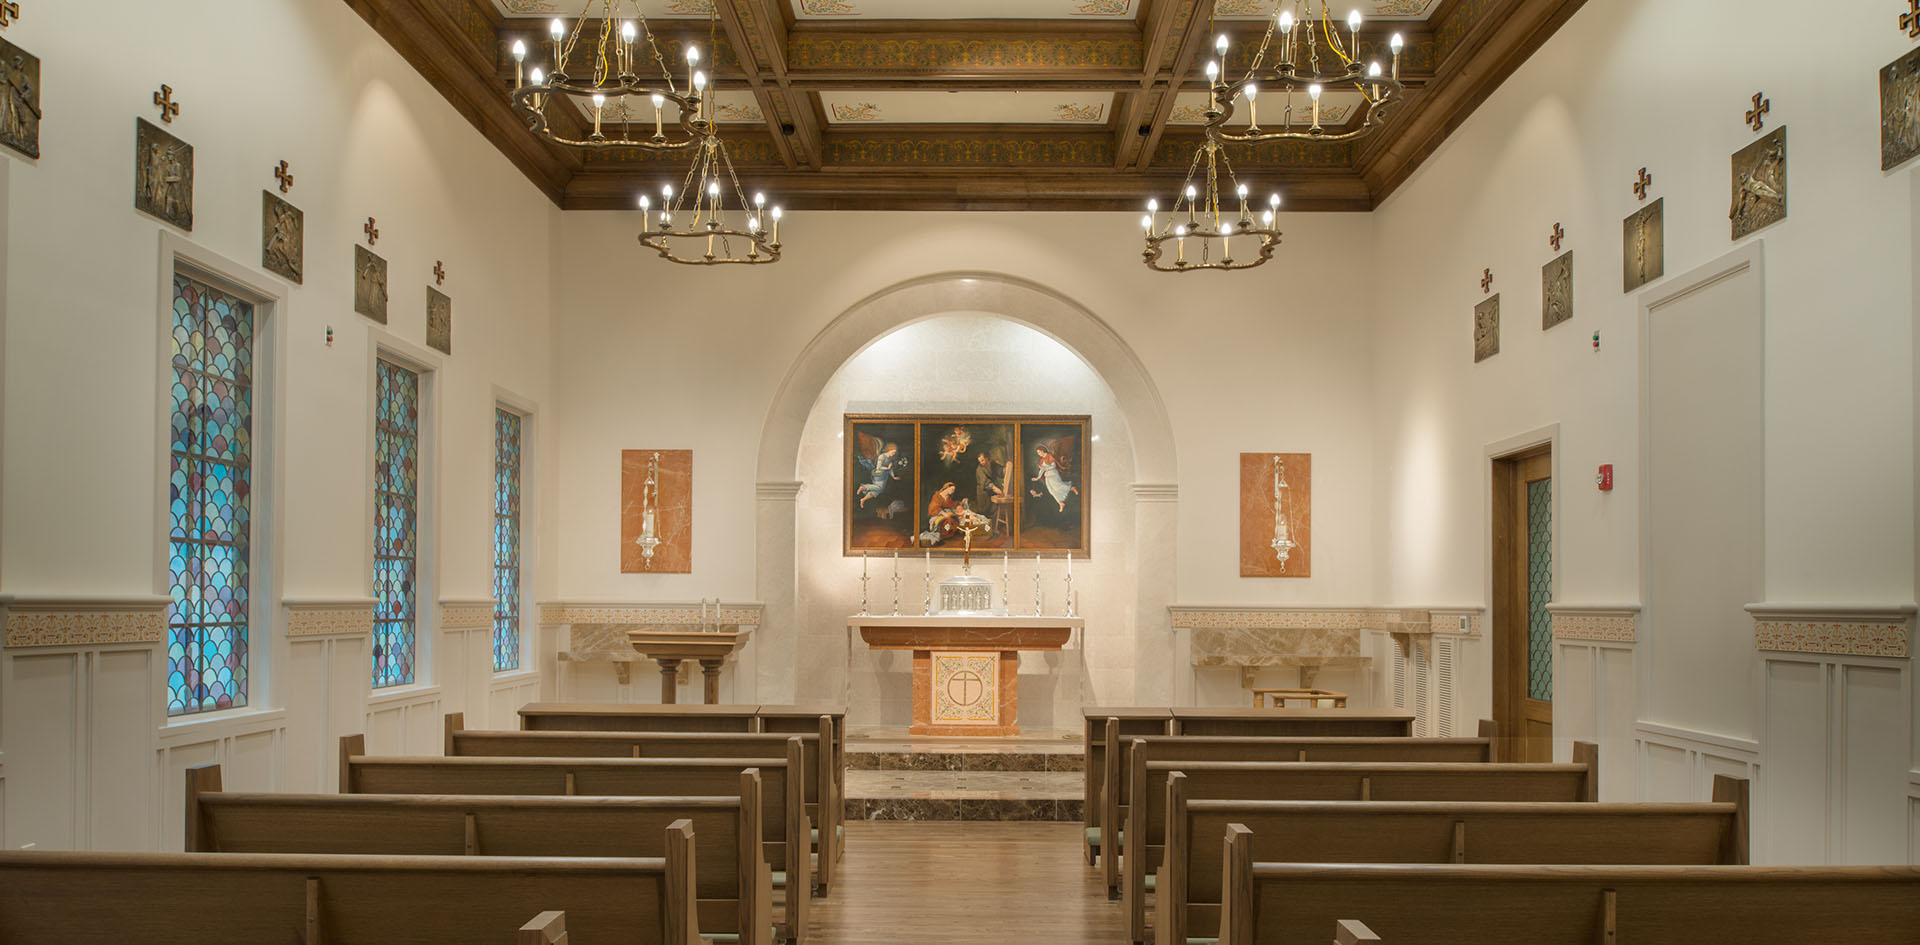 Chapel Award winning Opus Dei, Oratory, Sacristy, liturgical space, young women, daily mass